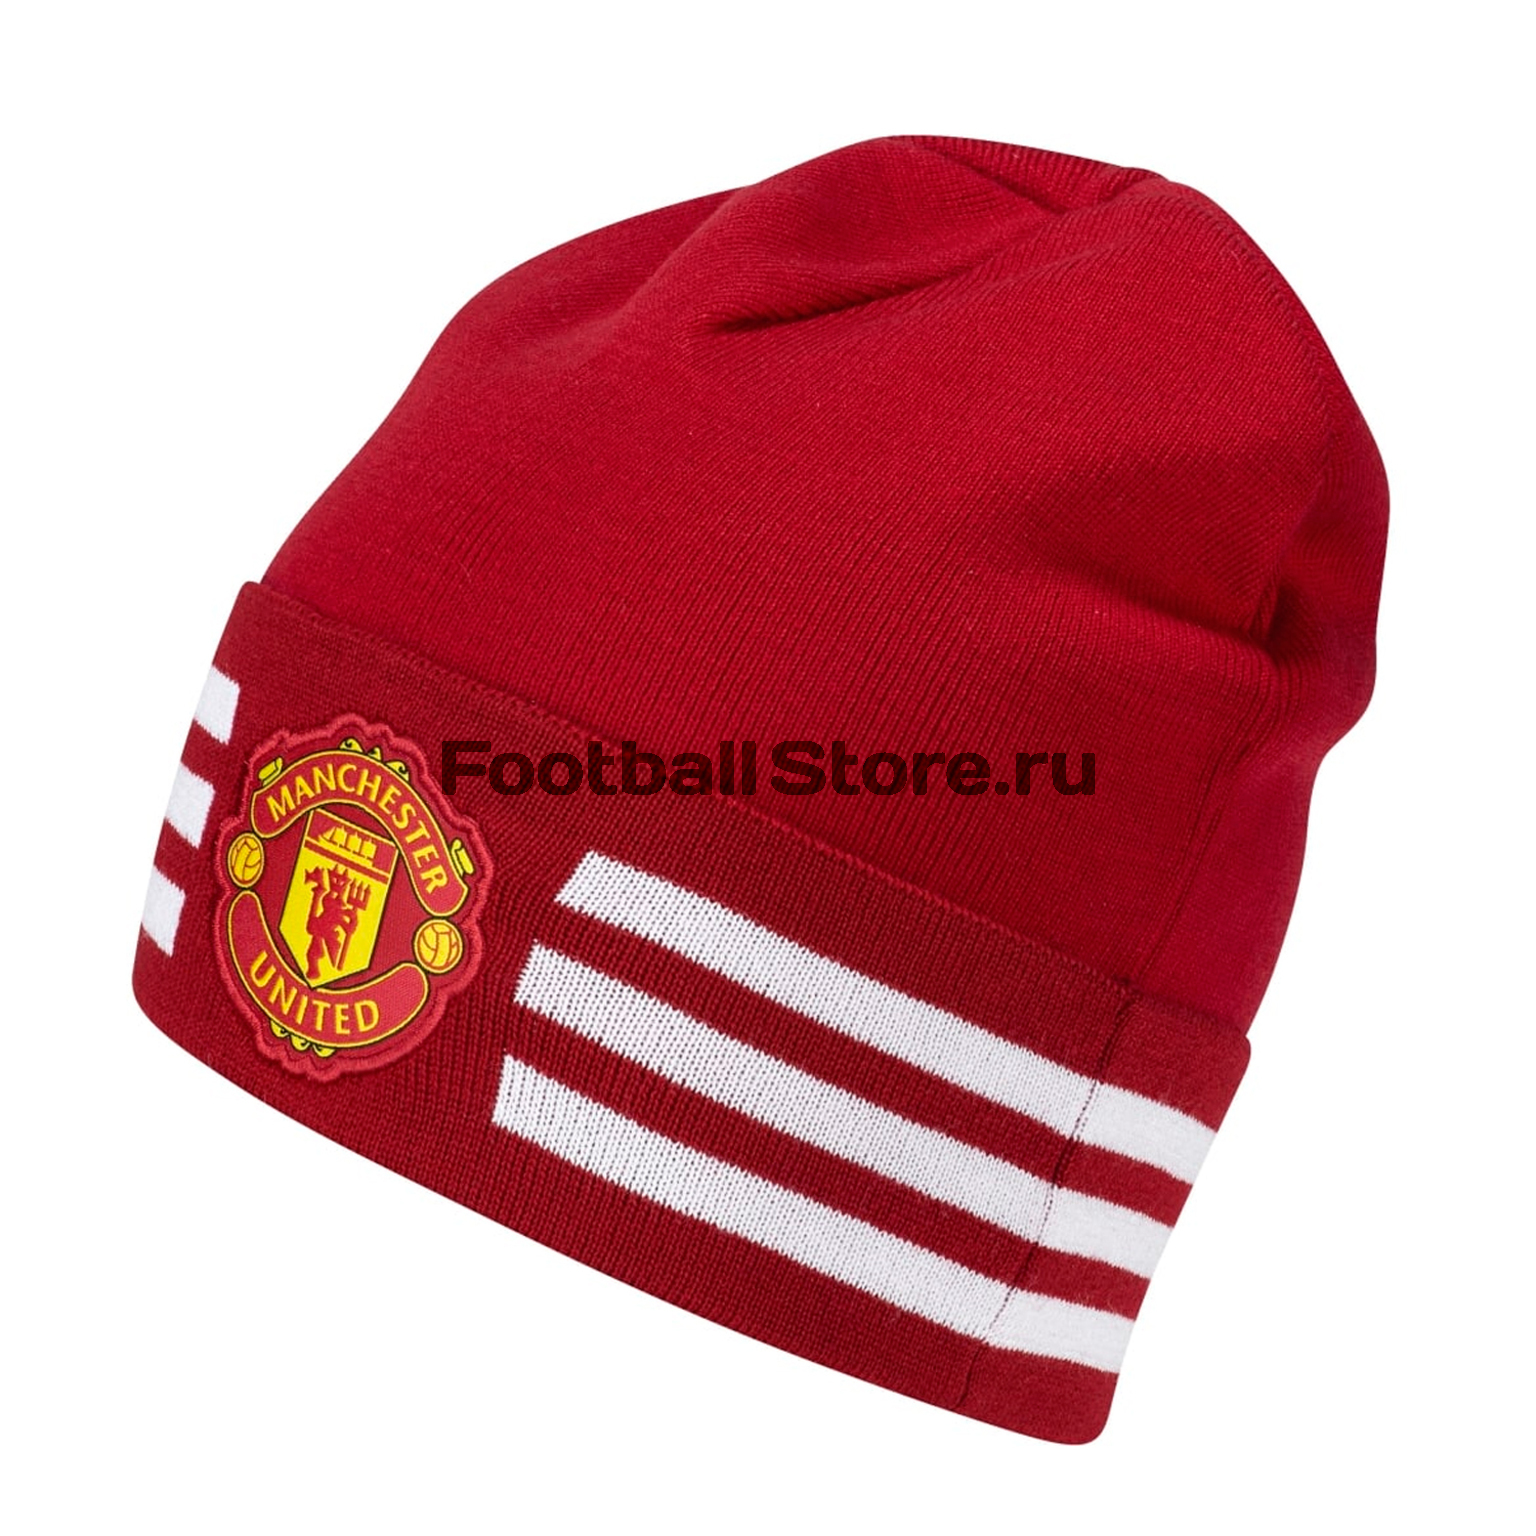 Manchester United Adidas Шапка Adidas Manchester United 3S Woolie S94976